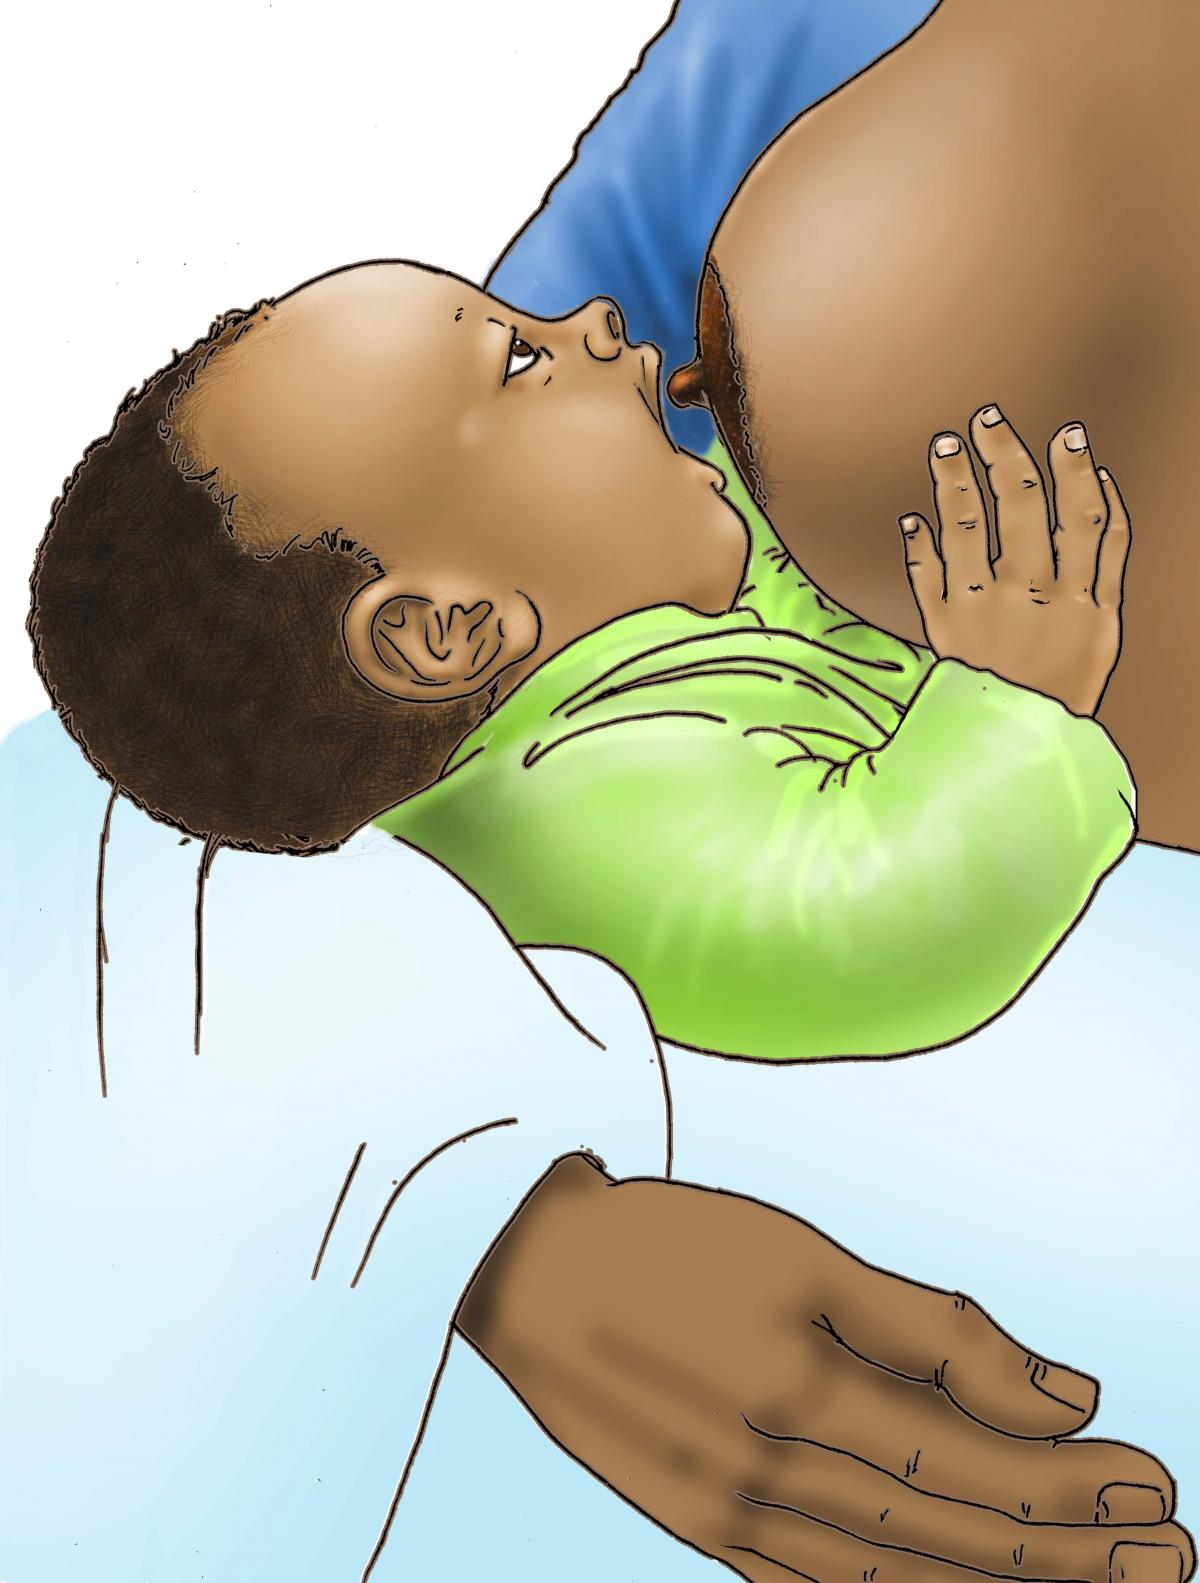 Breastfeeding - Breastfeeding pre-attachment 0-6 mo - 05E - Nigeria